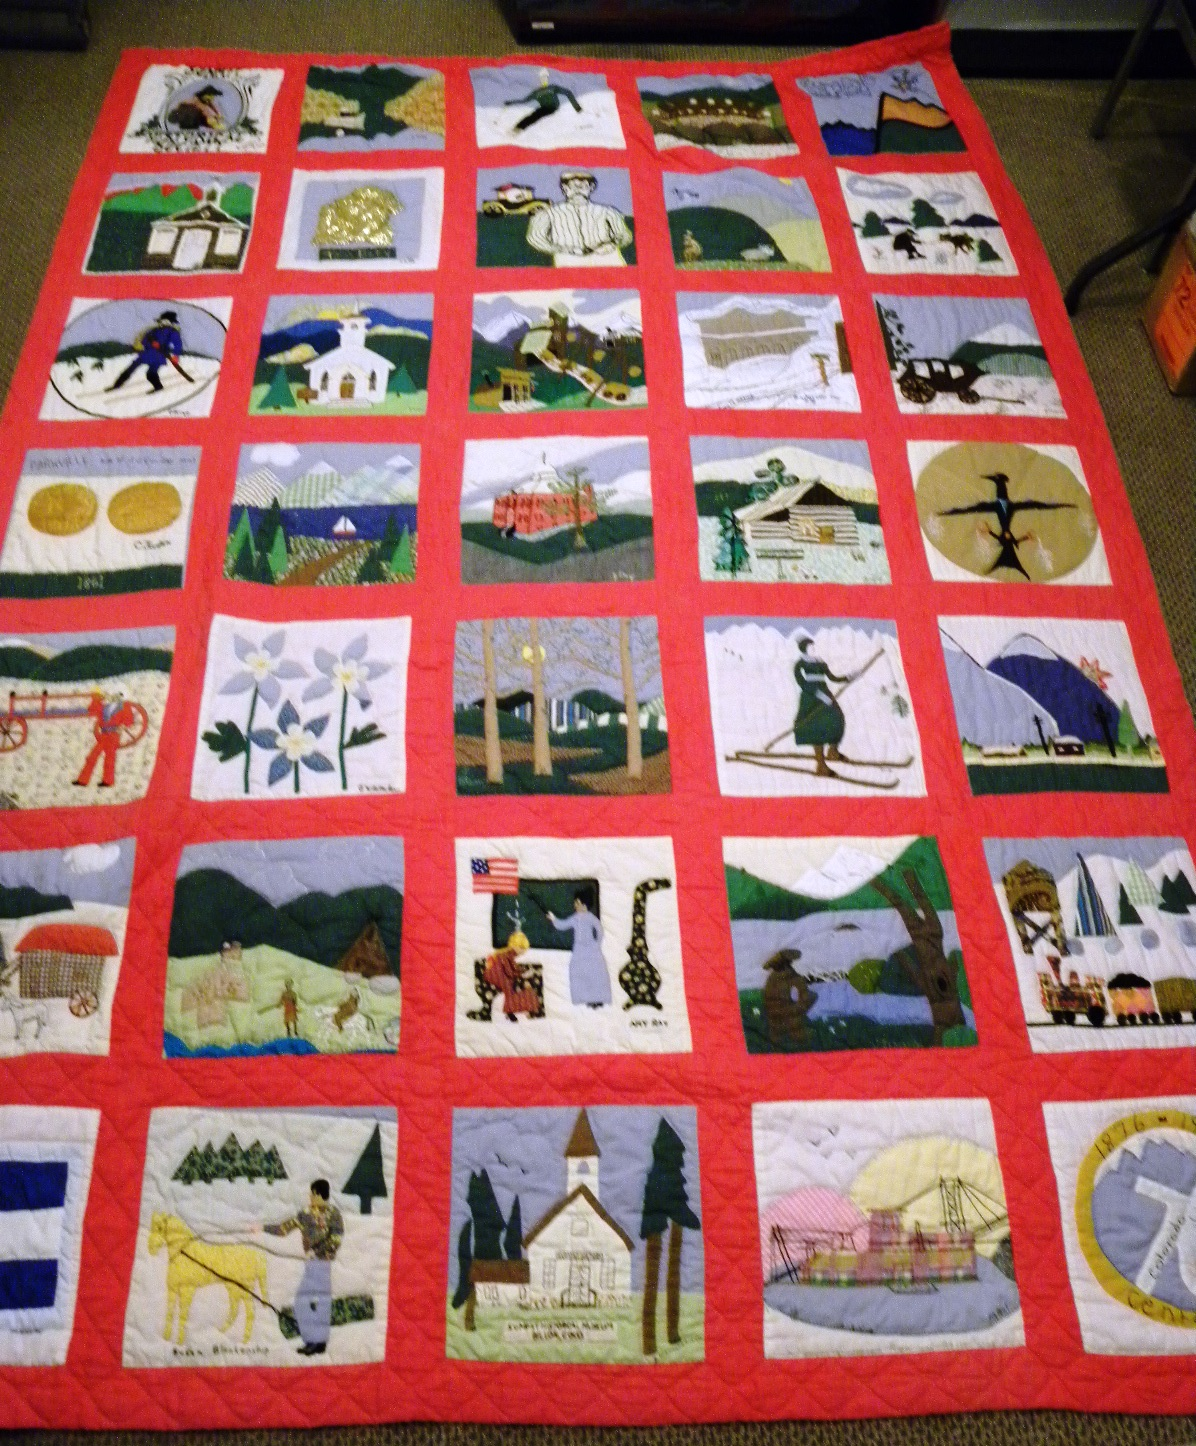 A quilt crafted for the 1976 Colorado Centennial celebration raffle. It has 35 quilted blocks depicting Summit County and Colorado motifs. Most blocks have the signature of the sewer.